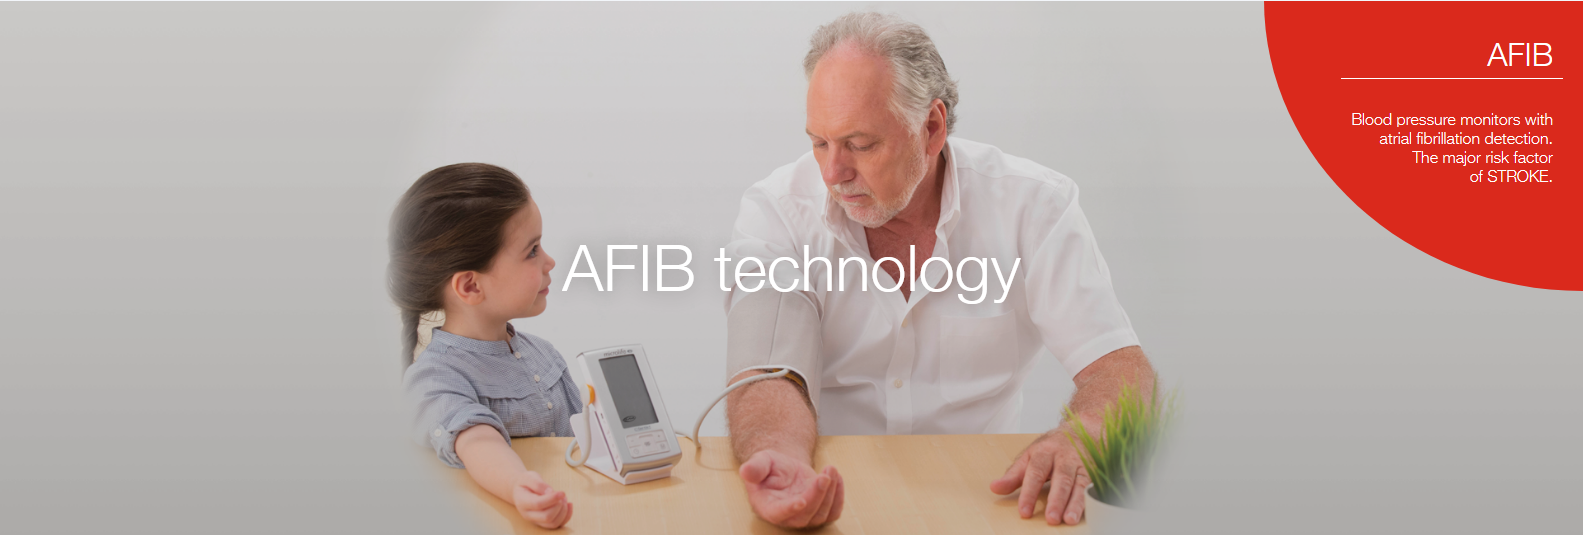 AFIB technology - patient focus